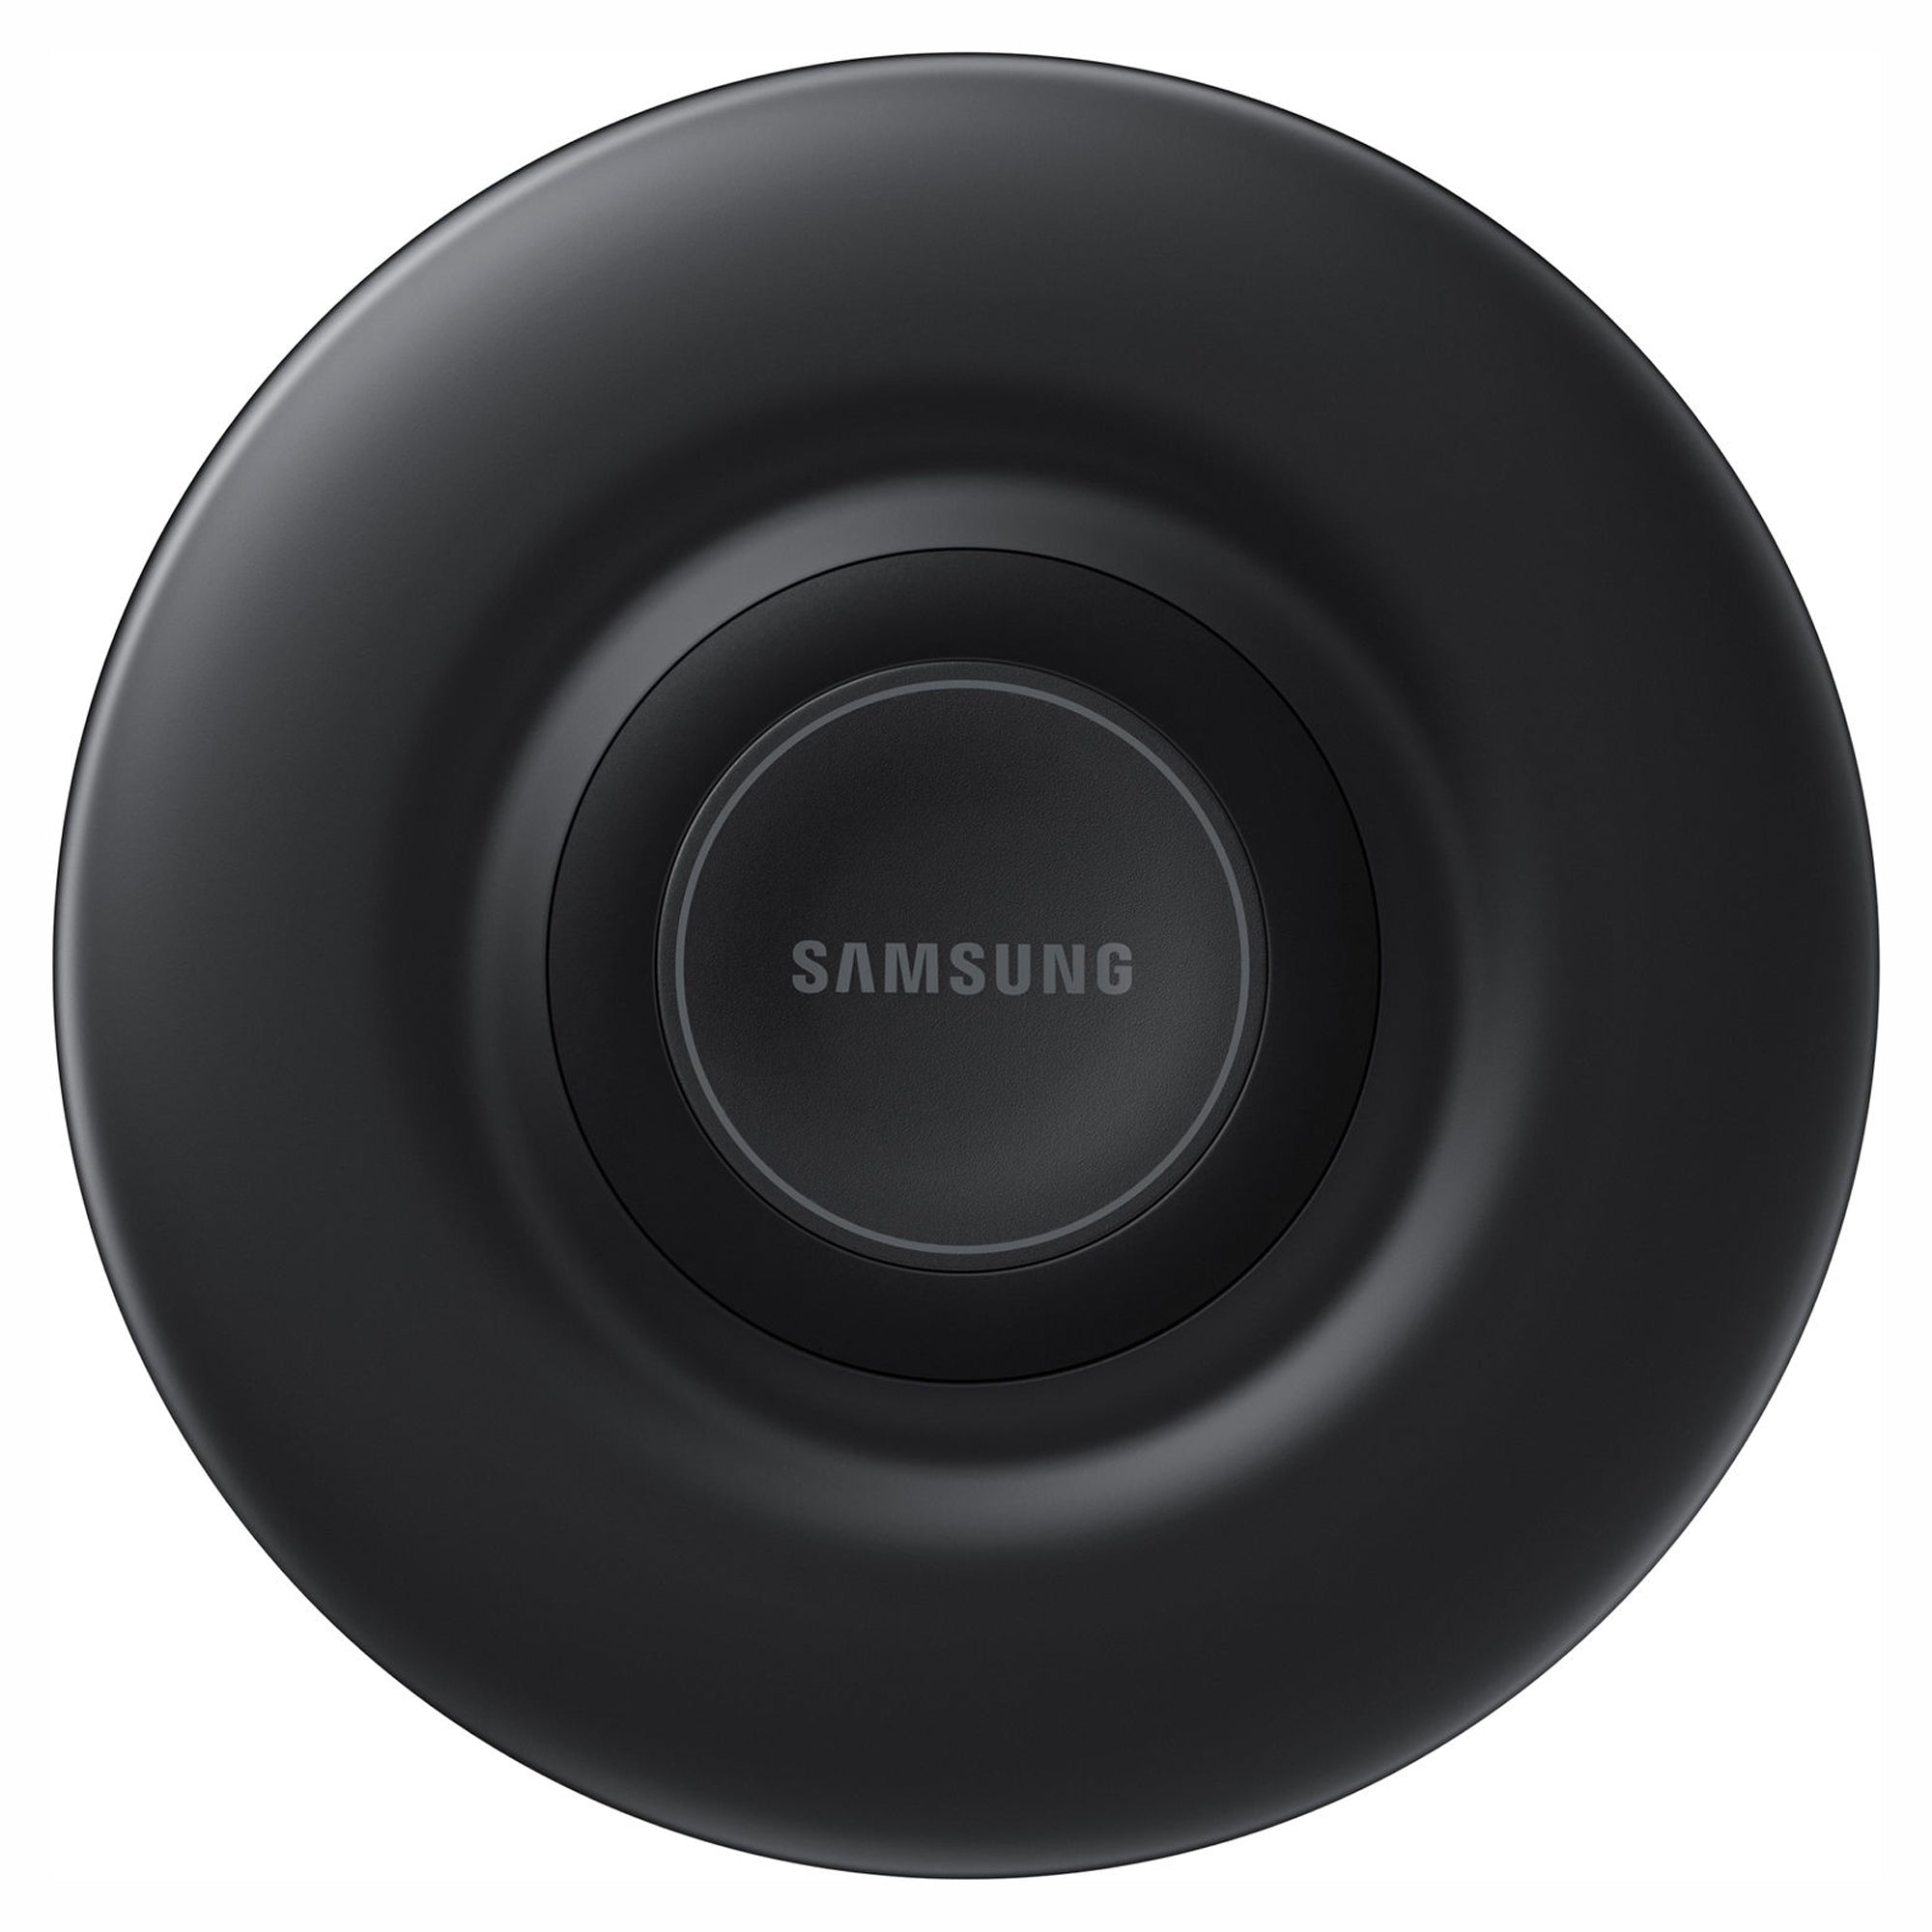 Wireless Charger Pad - Black